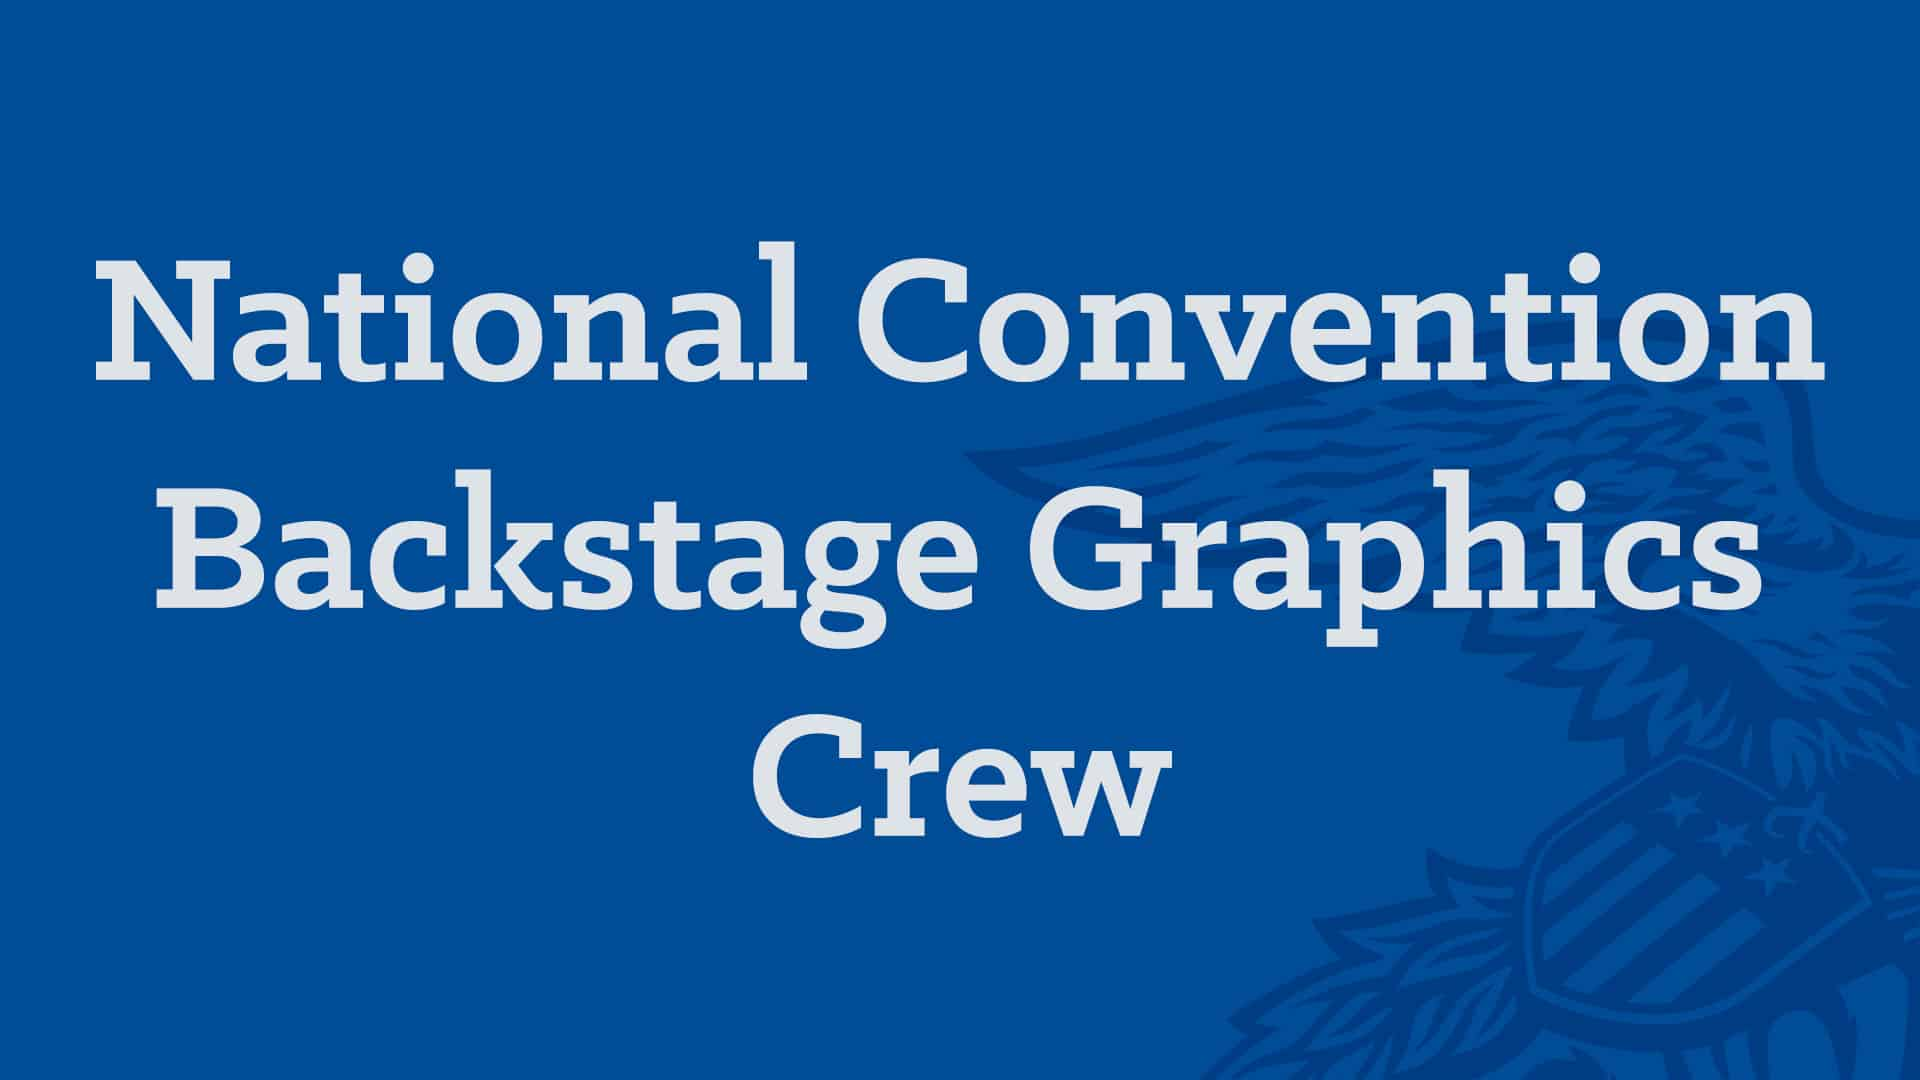 National Convention Backstage Graphics Crew Image